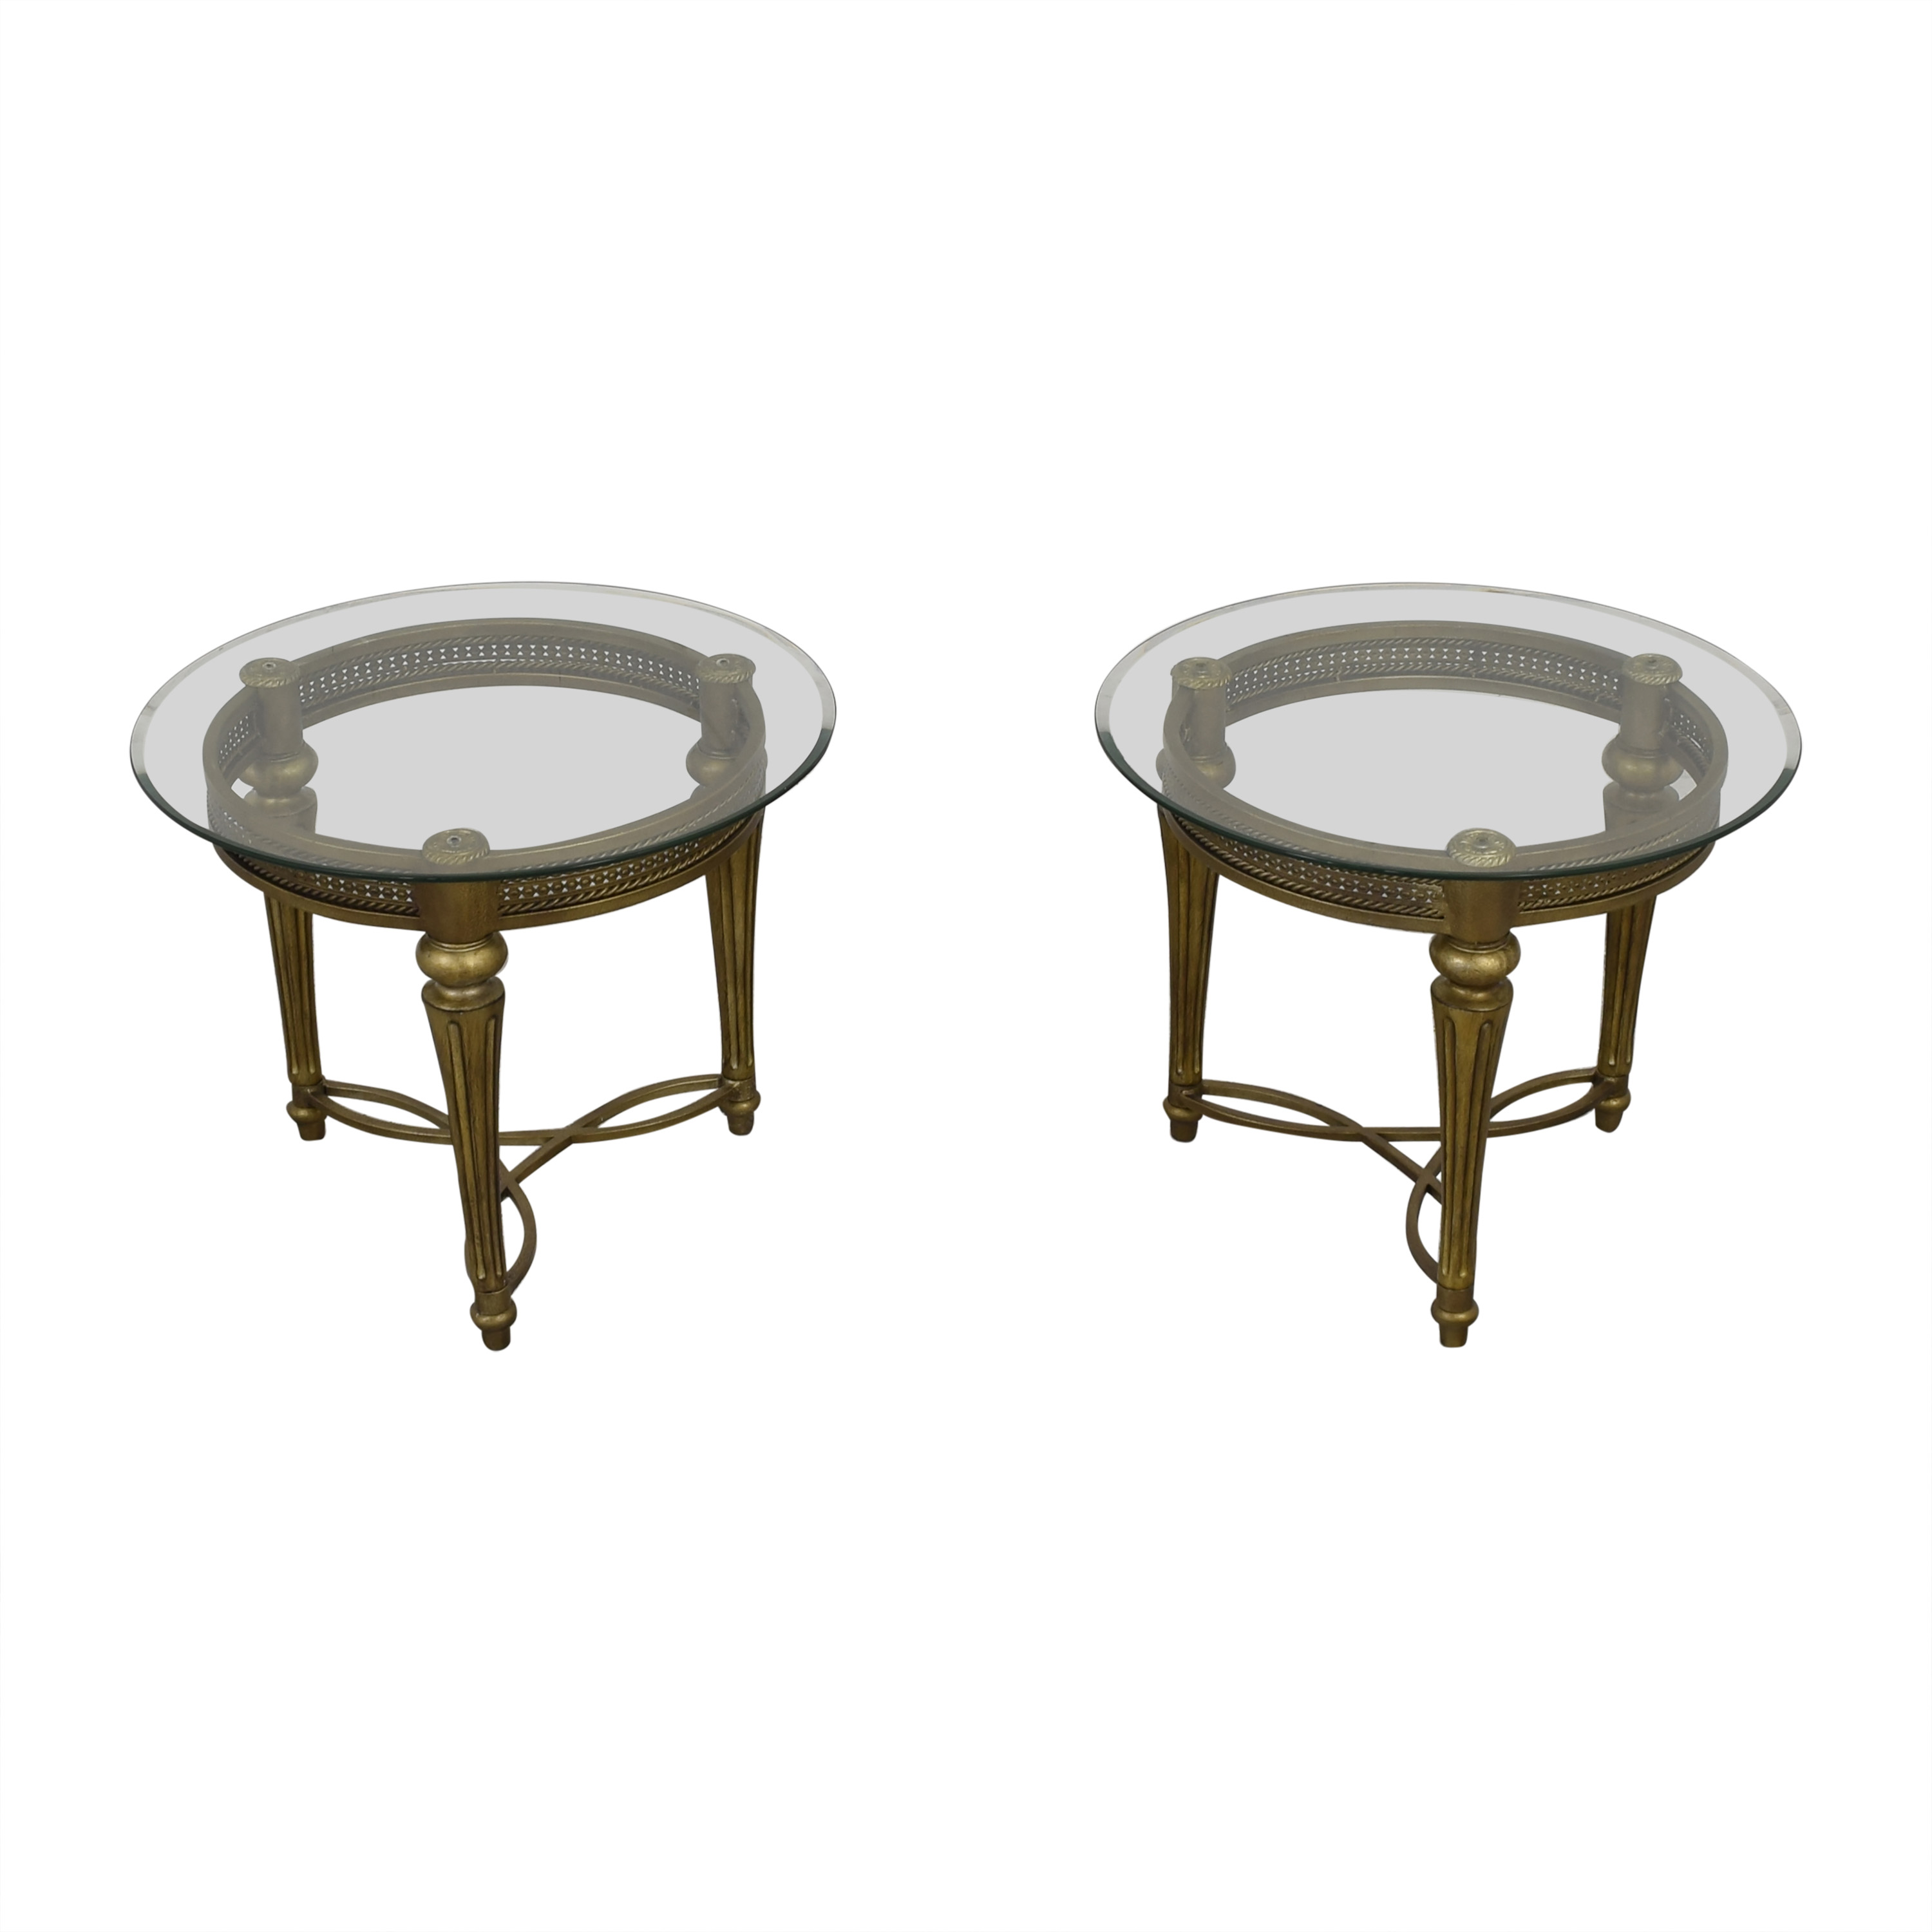 Magnussen Home Furniture Galloway Round End Tables / Tables